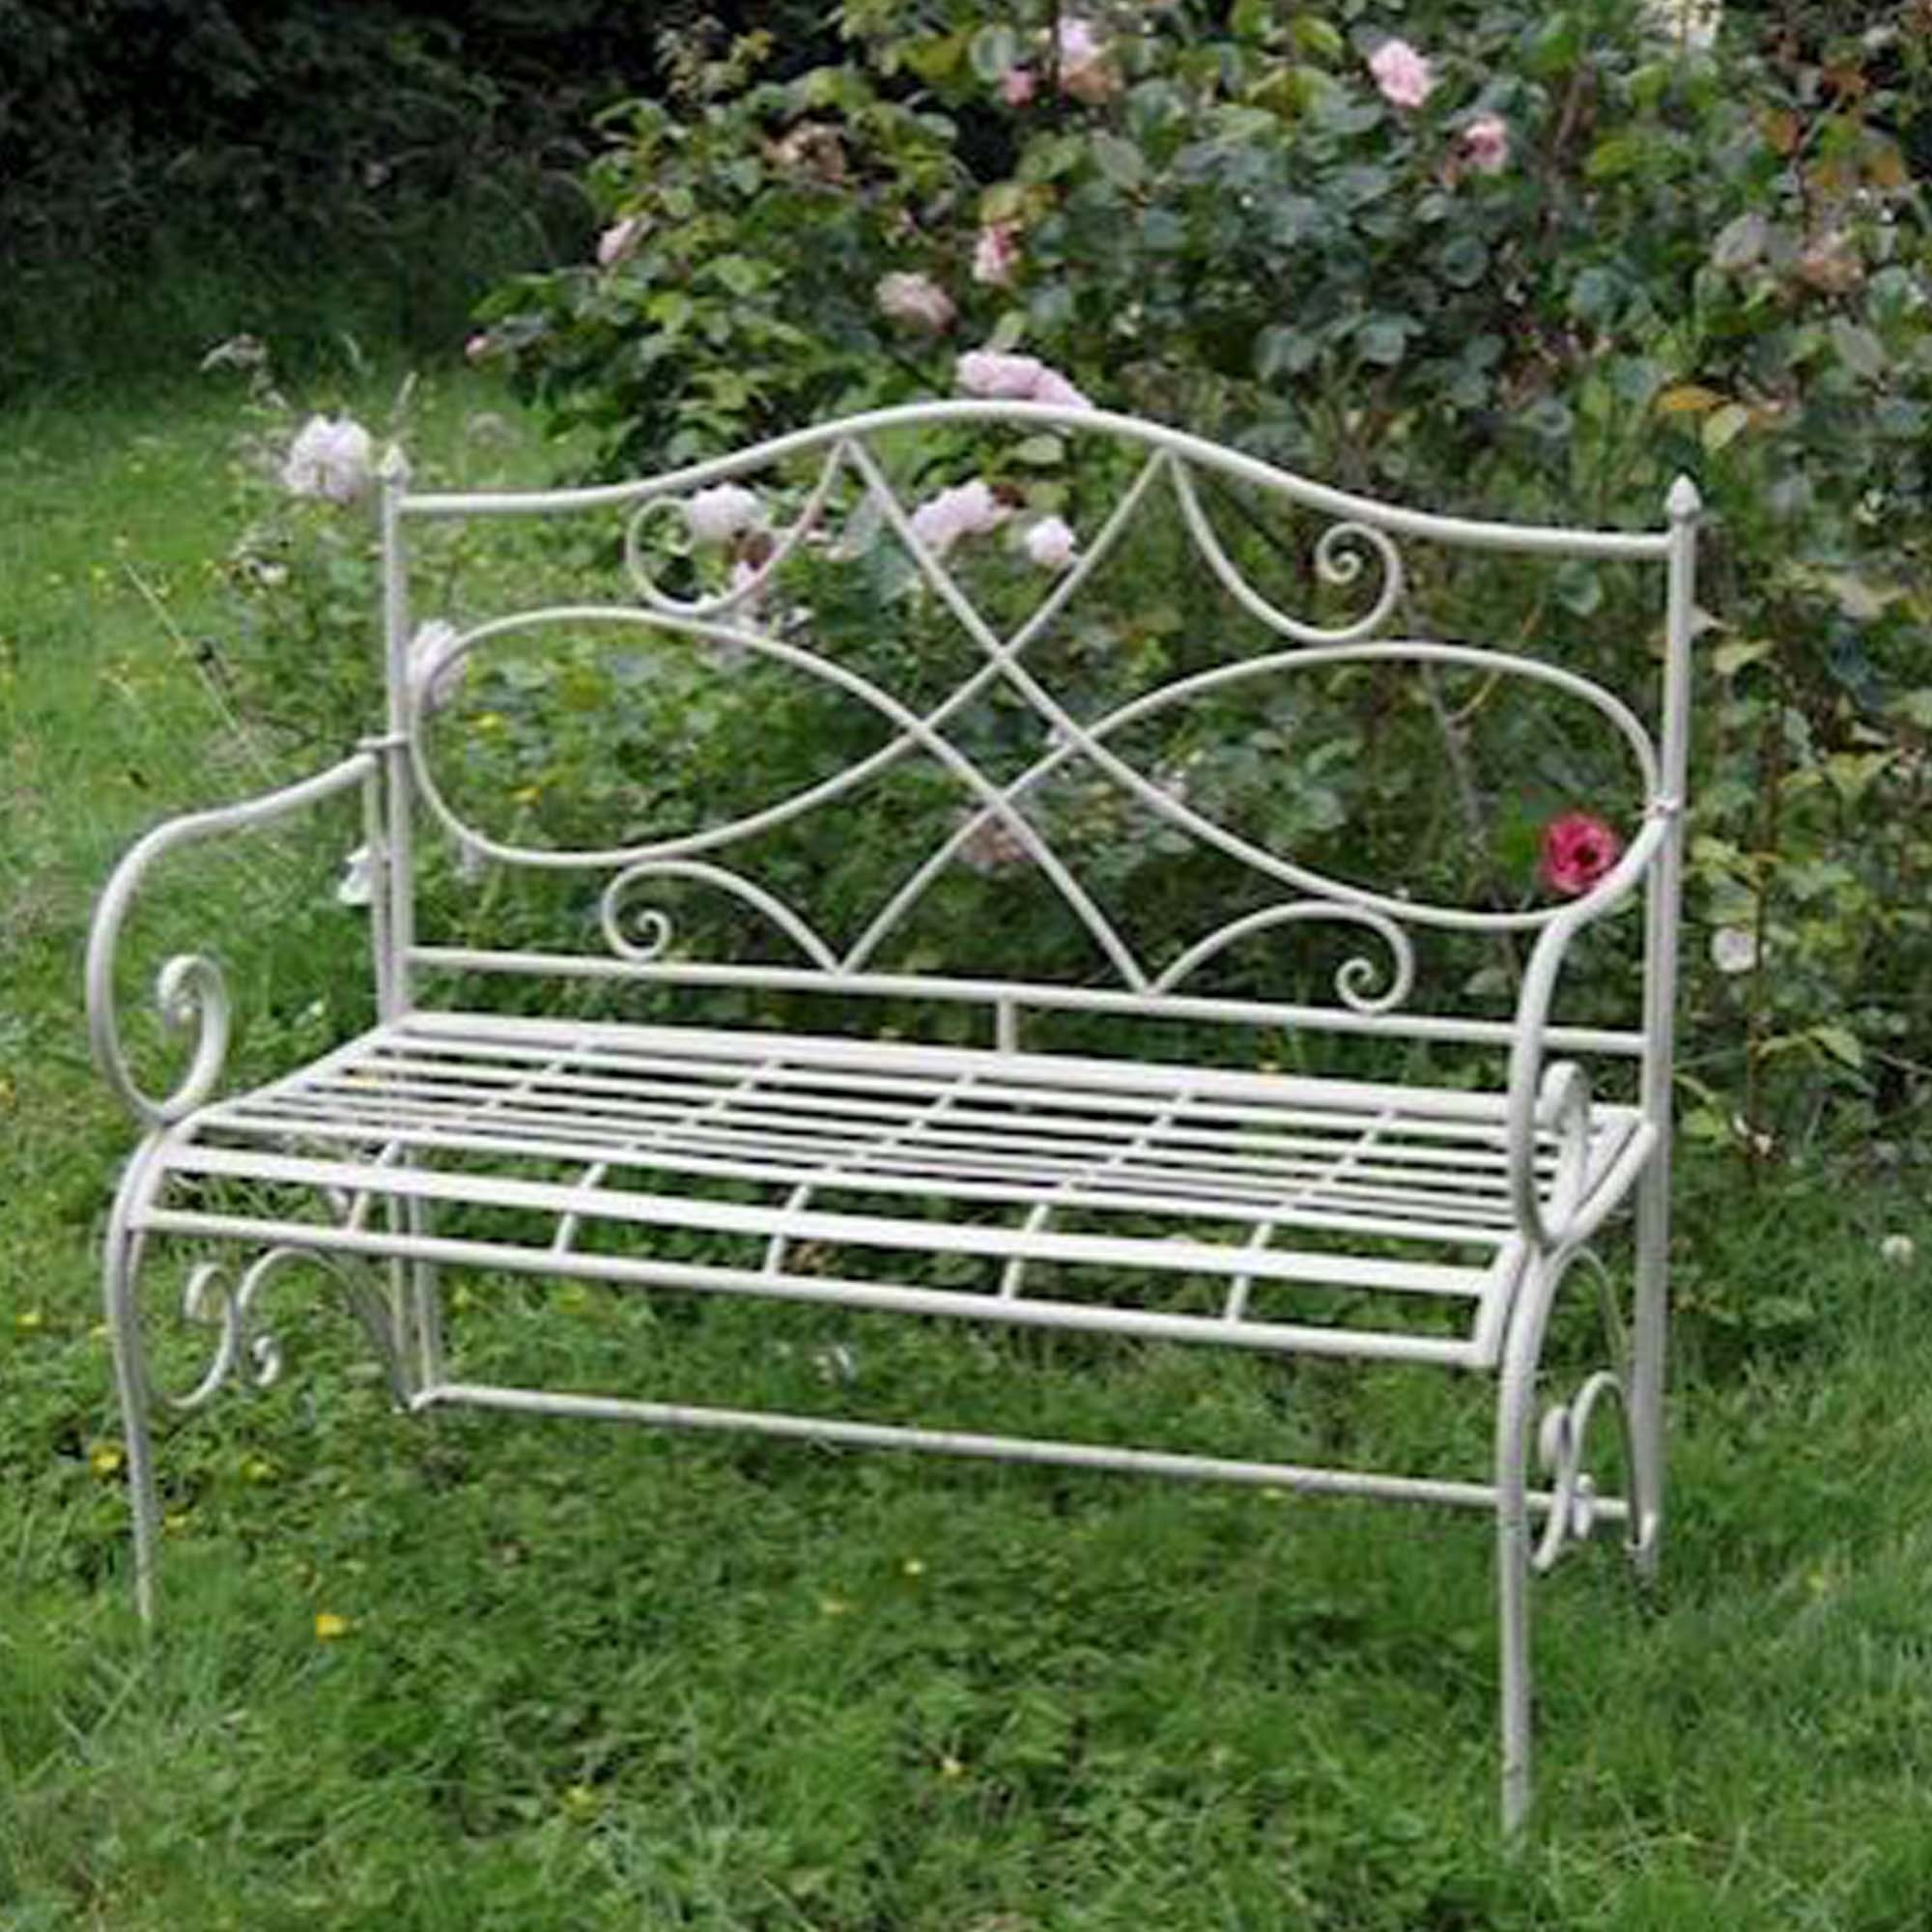 Cheltenham antique french style outdoor bench outdoorshomesdirect365